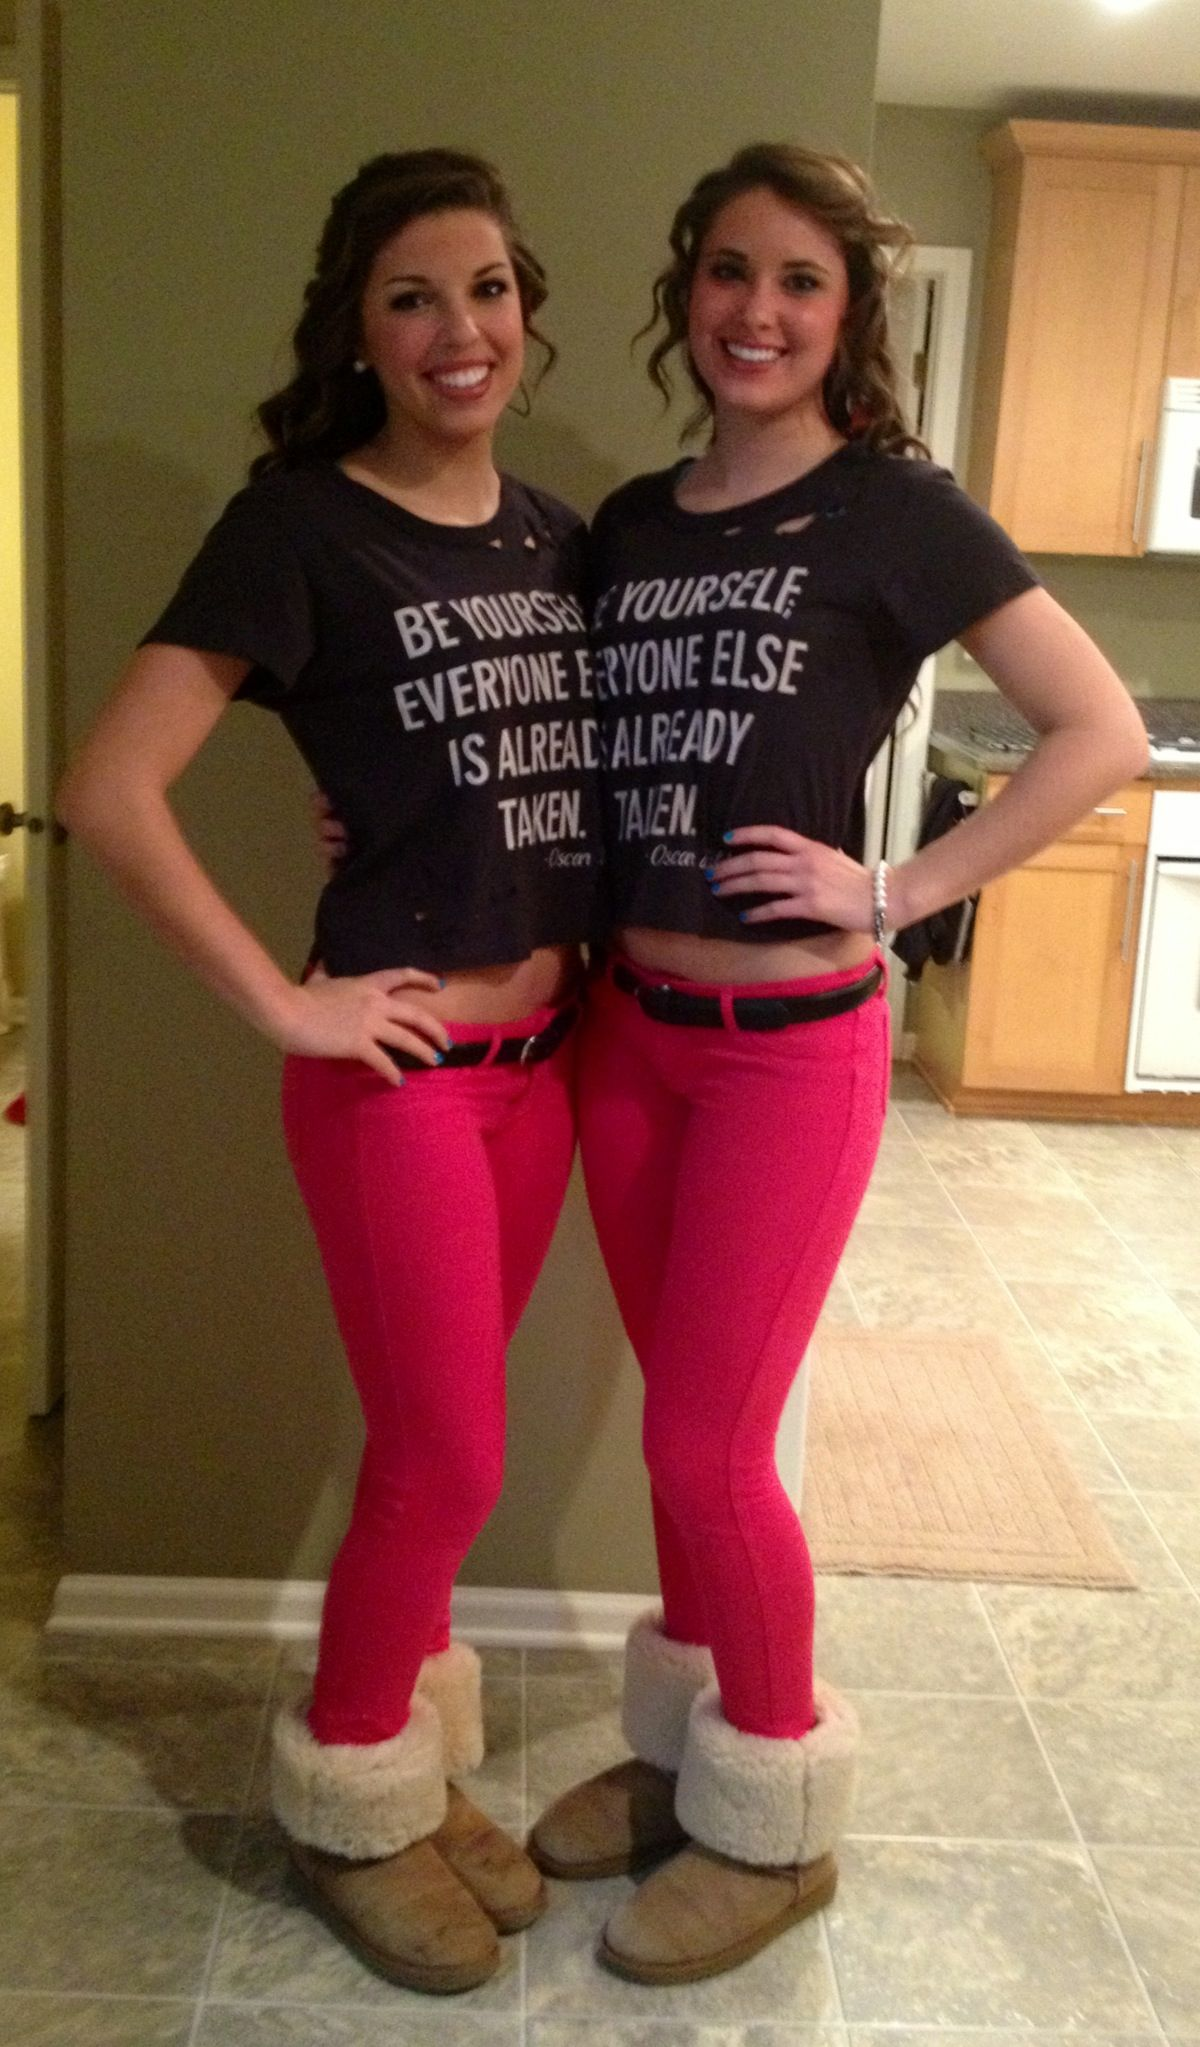 Best friend Twins 3 funny Halloween costumes